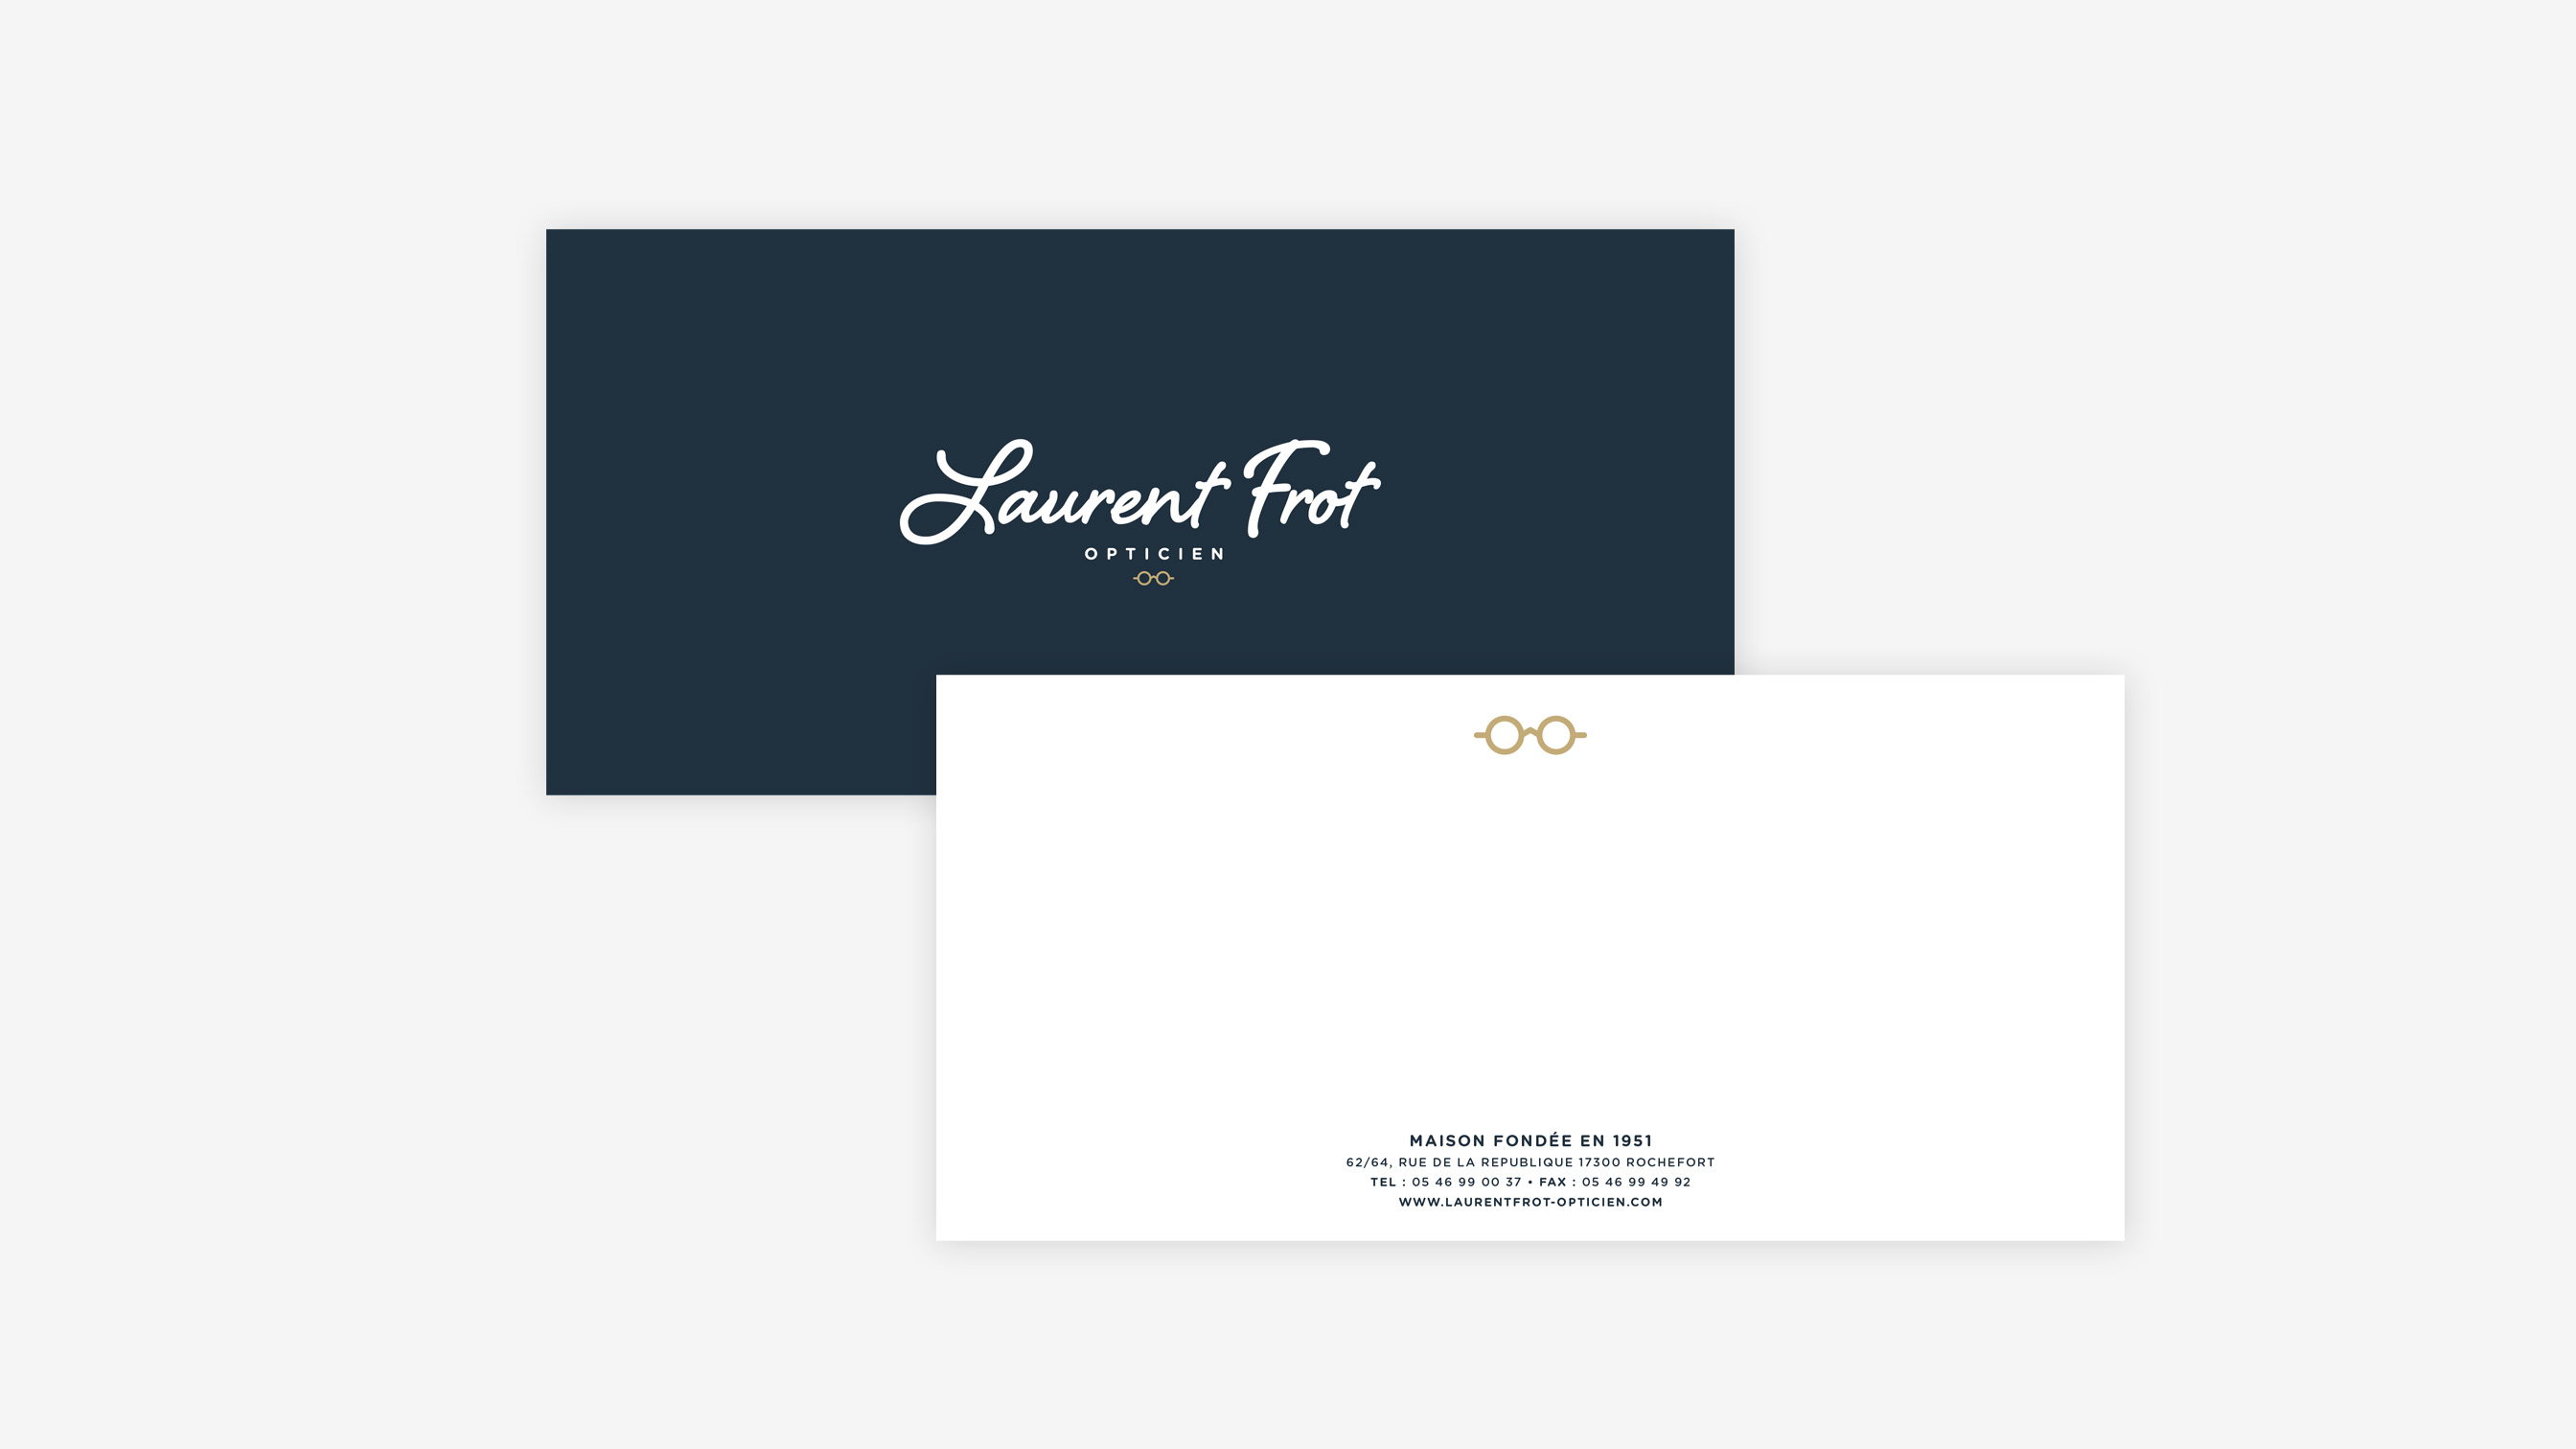 08-laurent-frot-opticien-pikteo-webdesign-graphic-design-freelance-paris-bruxelles-londres